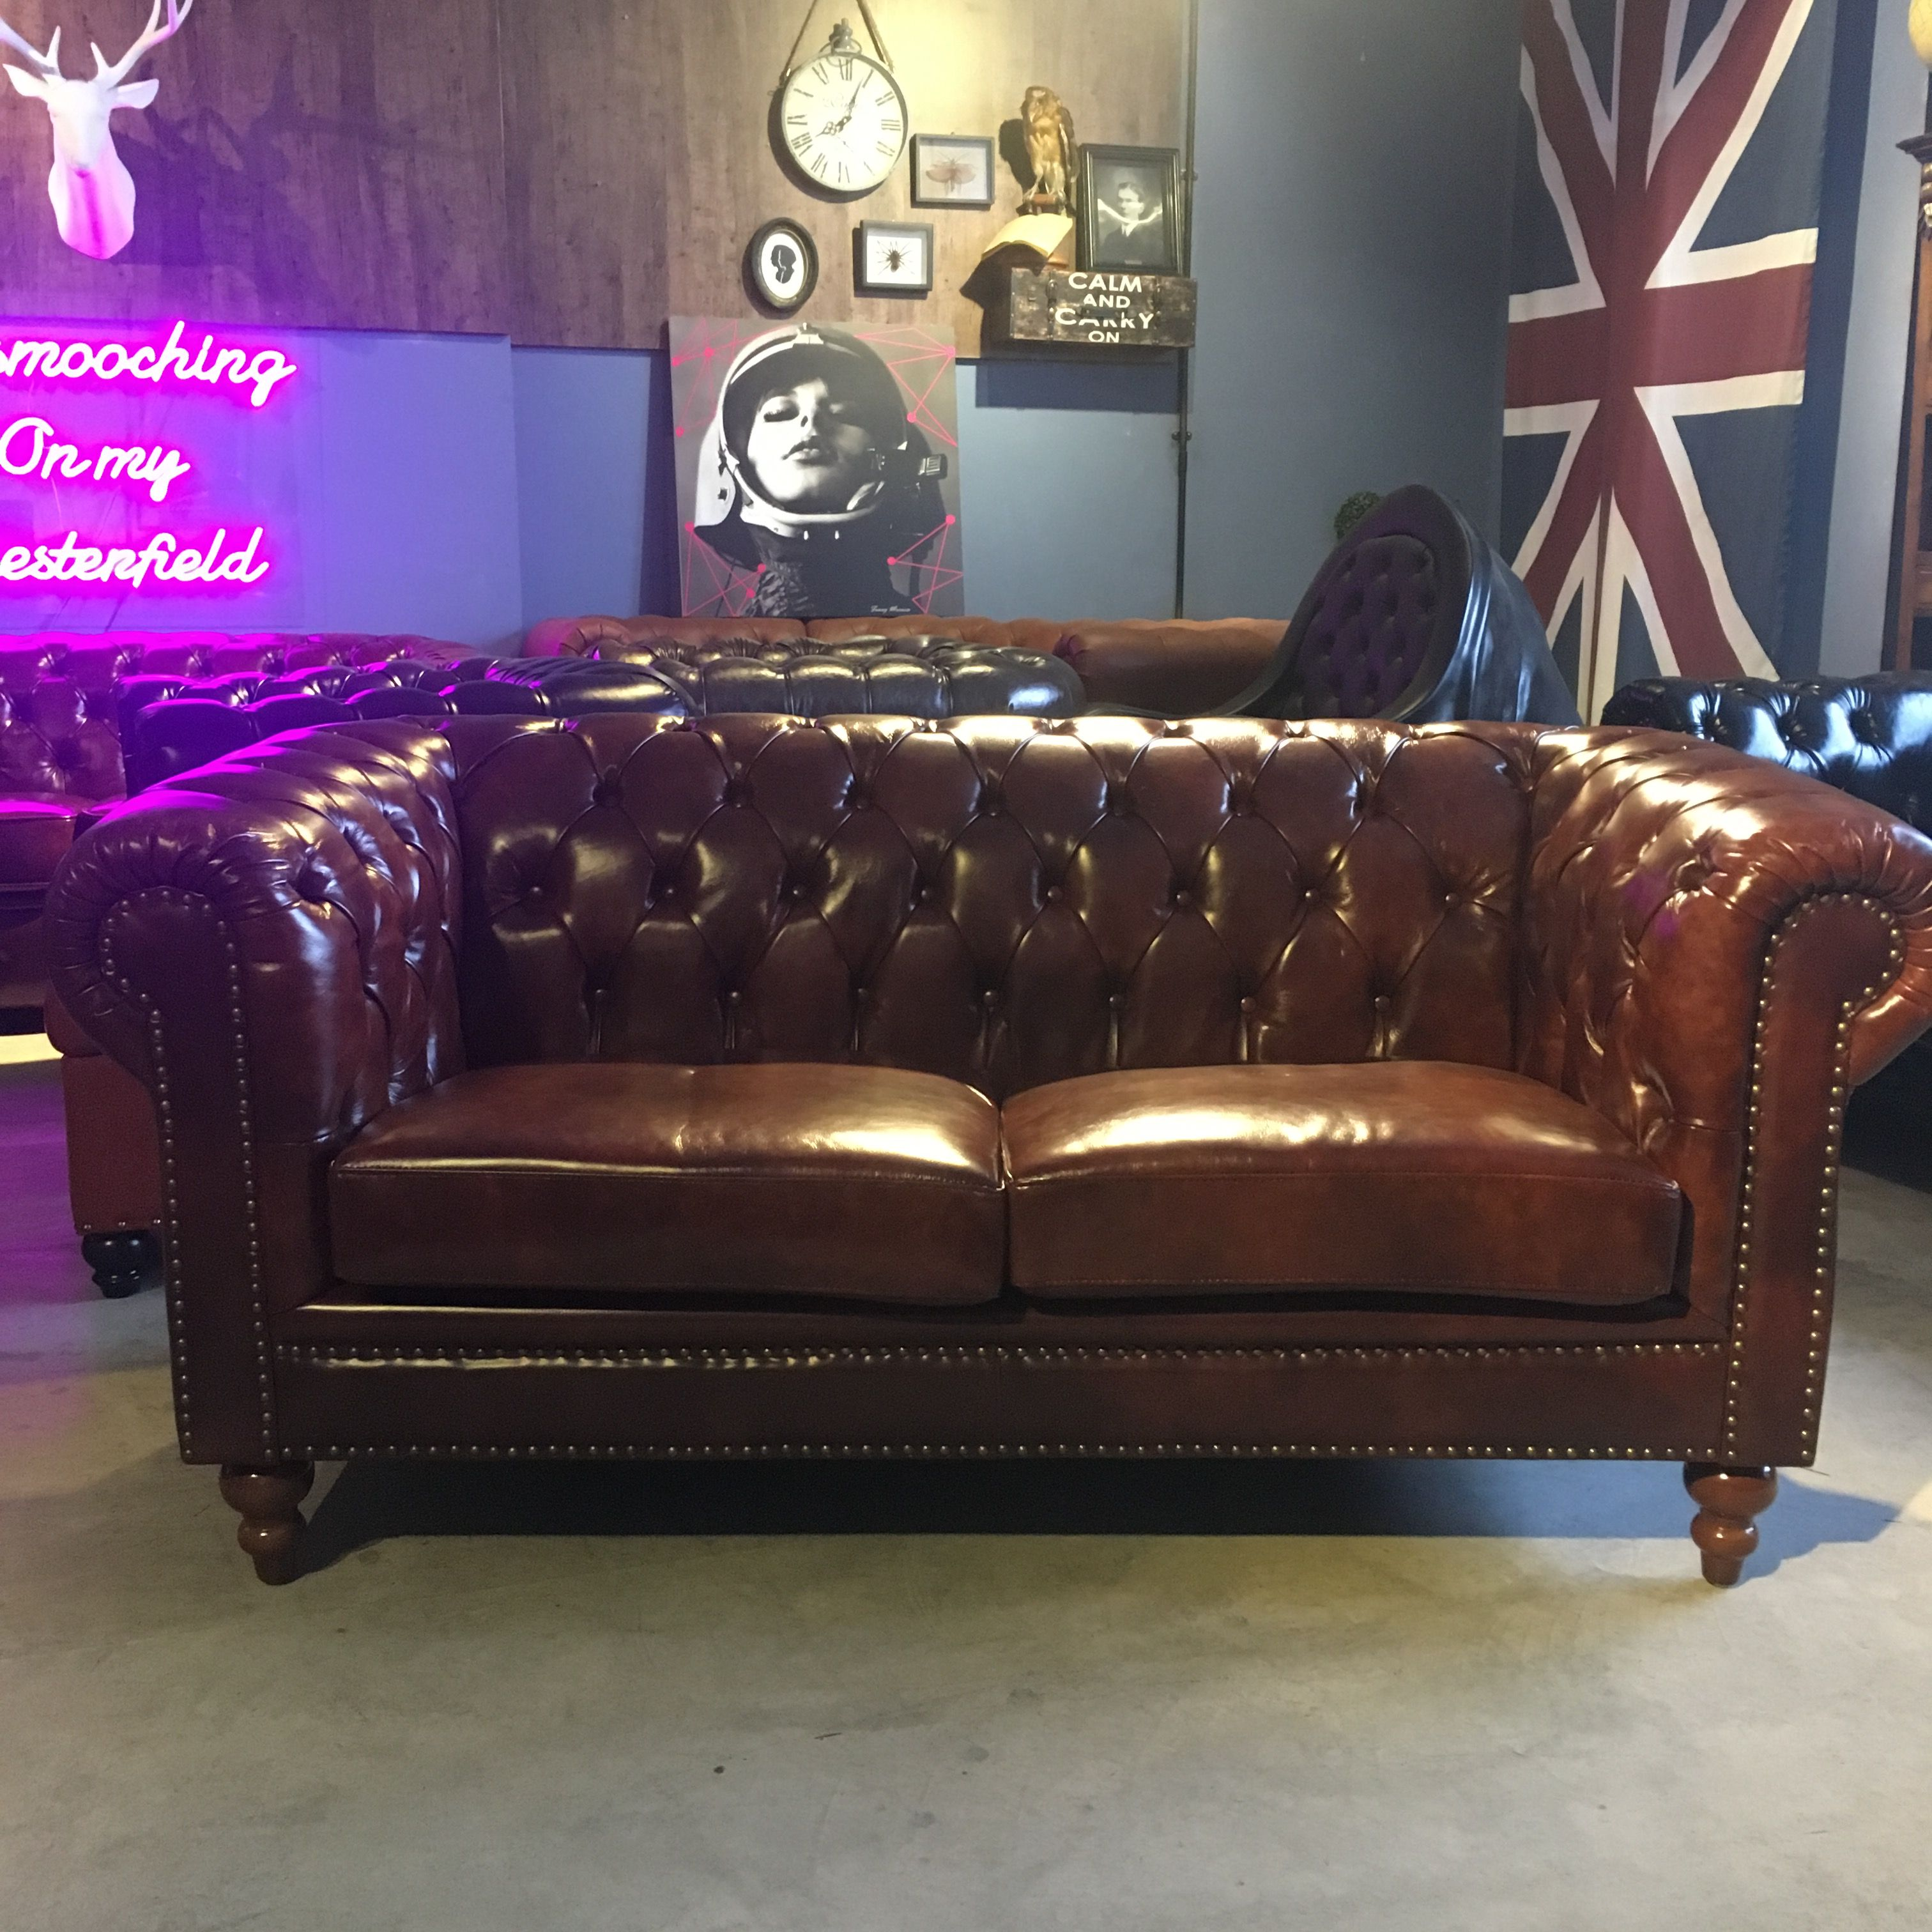 Singapore Leather Chesterfield Sofa 2 Seater Chesterfield Sofa Pinterest Chesterfield Sofa Sofa And Chesterfield